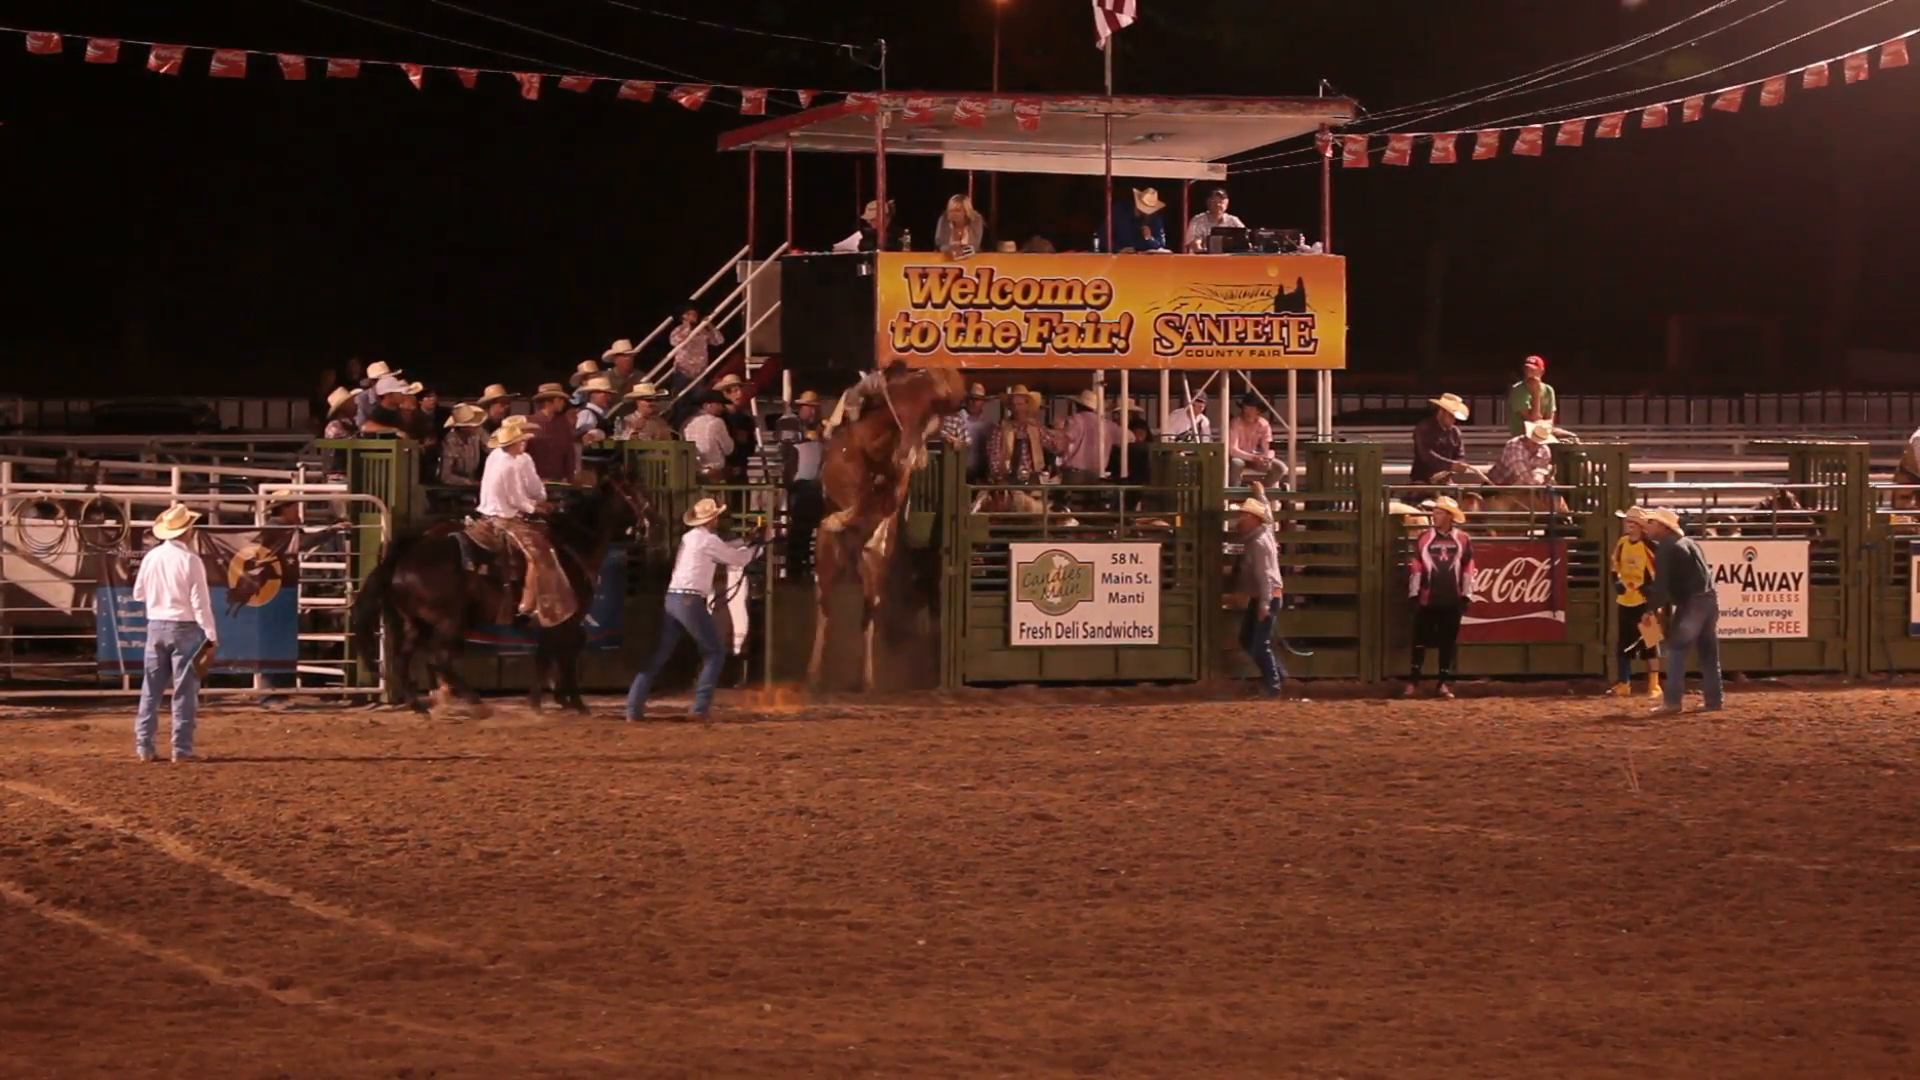 Rodeo saddle bronco horse ride gets rough ride out of chute to score high.  Night time event in central Utah. Cowboy rides hard riding bucking bronc  during PlusPng.com  - Rodeo PNG HD Free